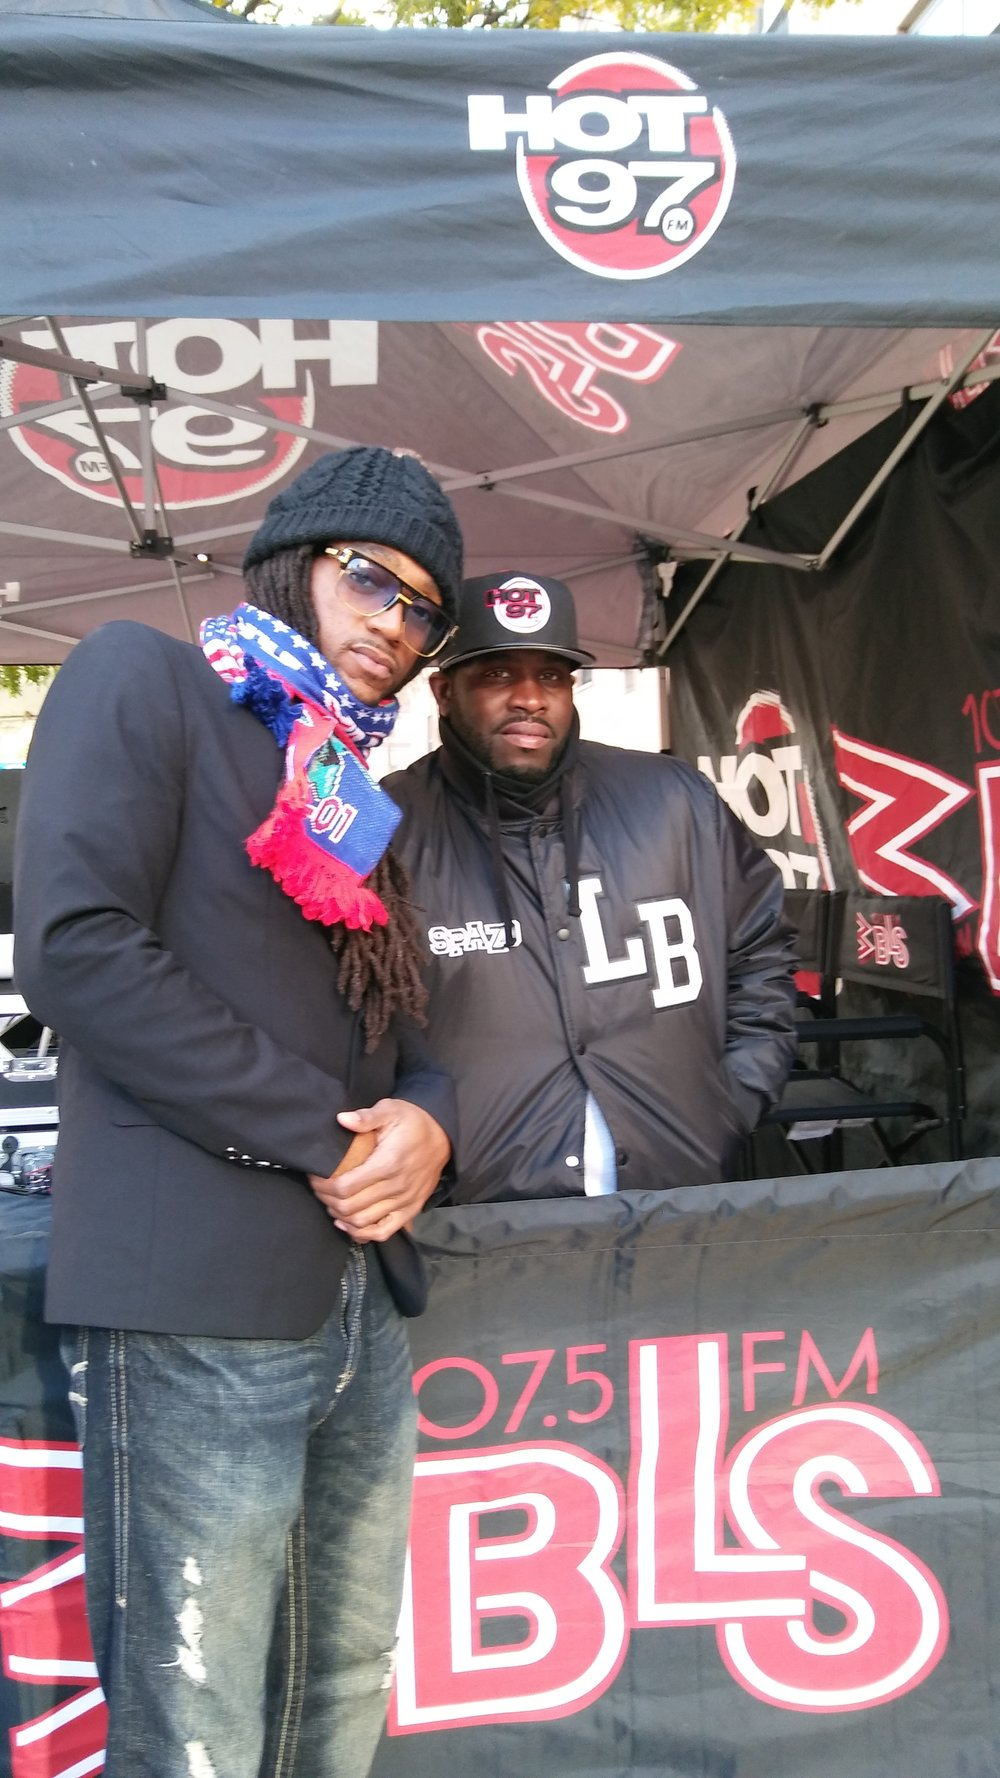 Image-I/ Afrikan Kartel w/ NY Hot 97 Dj Spazzo after performing on the Main Stage @2016 TCS NY Marathon